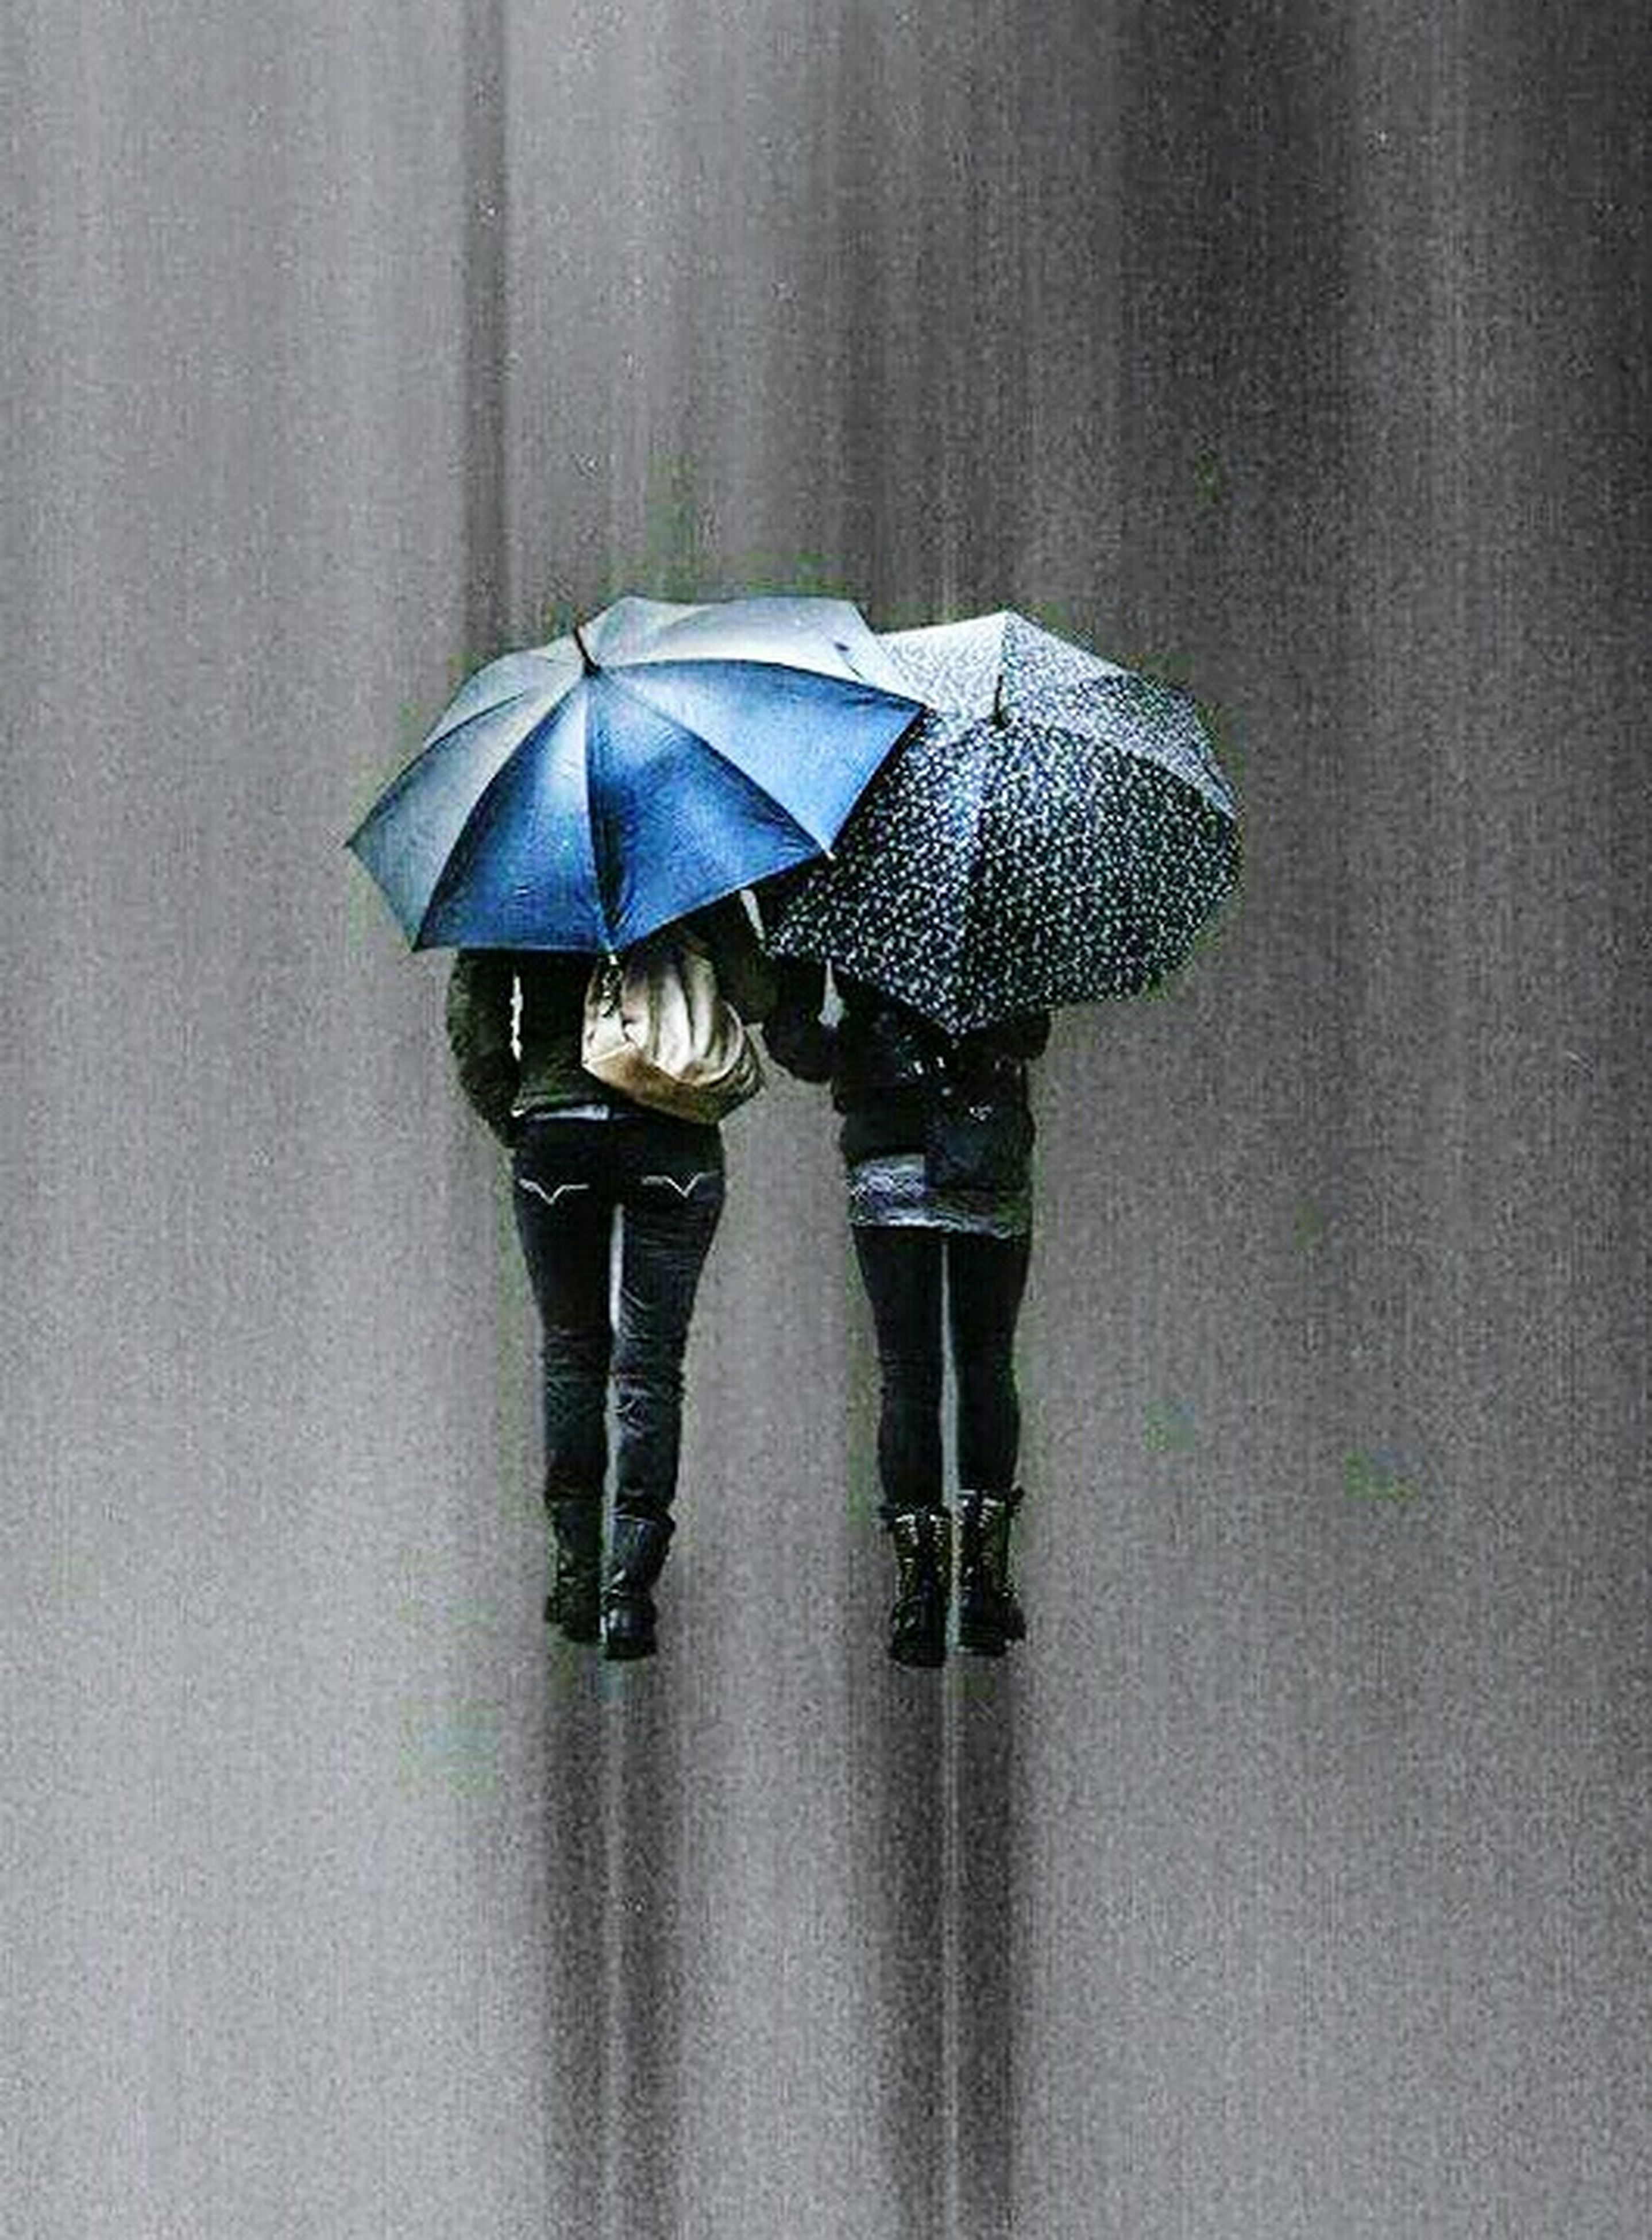 umbrella, rain, wet, protection, below, weather, rainy season, holding, full length, real people, walking, two people, water, adults only, low section, outdoors, day, people, drenched, togetherness, adult